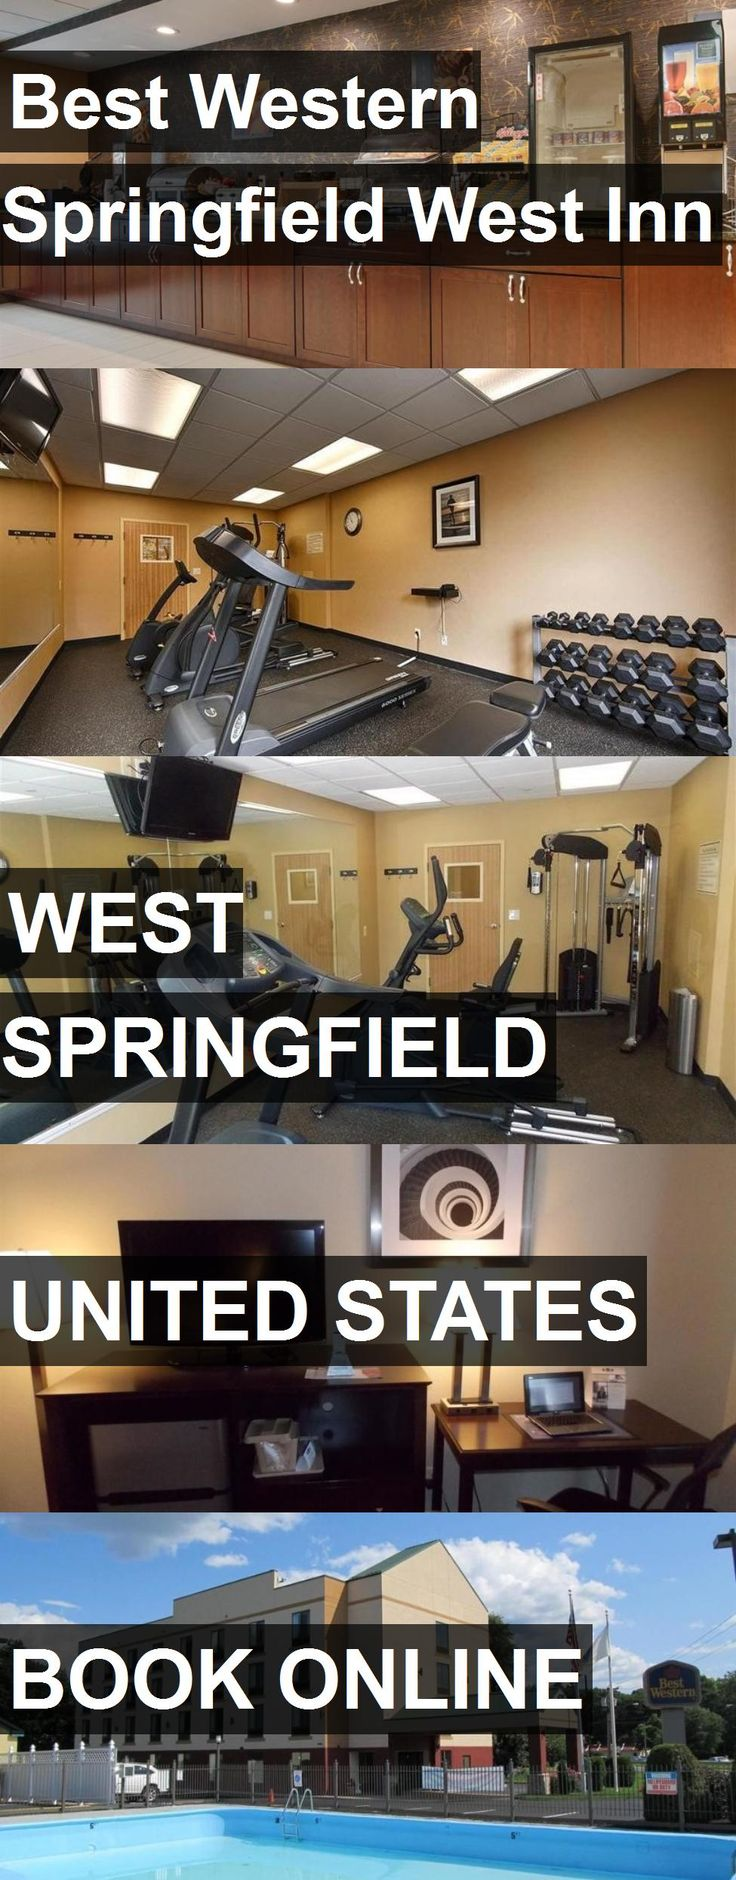 Hotel Best Western Springfield West Inn in West Springfield, United States. For more information, photos, reviews and best prices please follow the link. #UnitedStates #WestSpringfield #travel #vacation #hotel